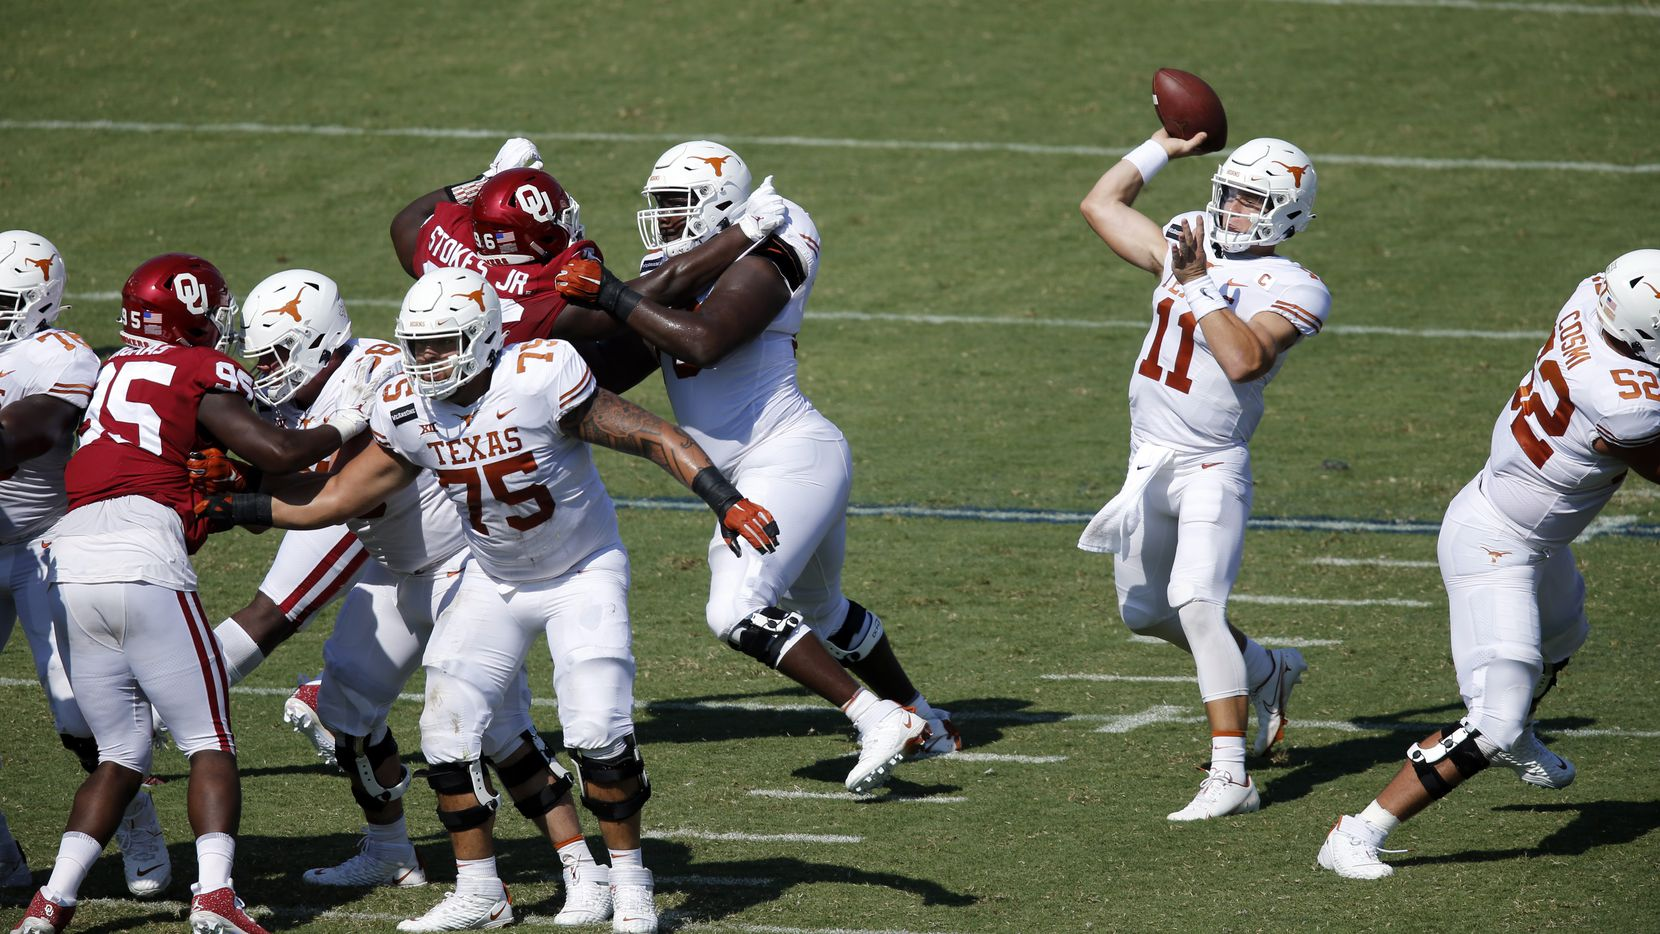 Texas Longhorns quarterback Sam Ehlinger (11) throws a first quarter pass against the Oklahoma Sooners in the Red River Rivalry at the Cotton Bowl in Dallas, Saturday, October 10, 2020.